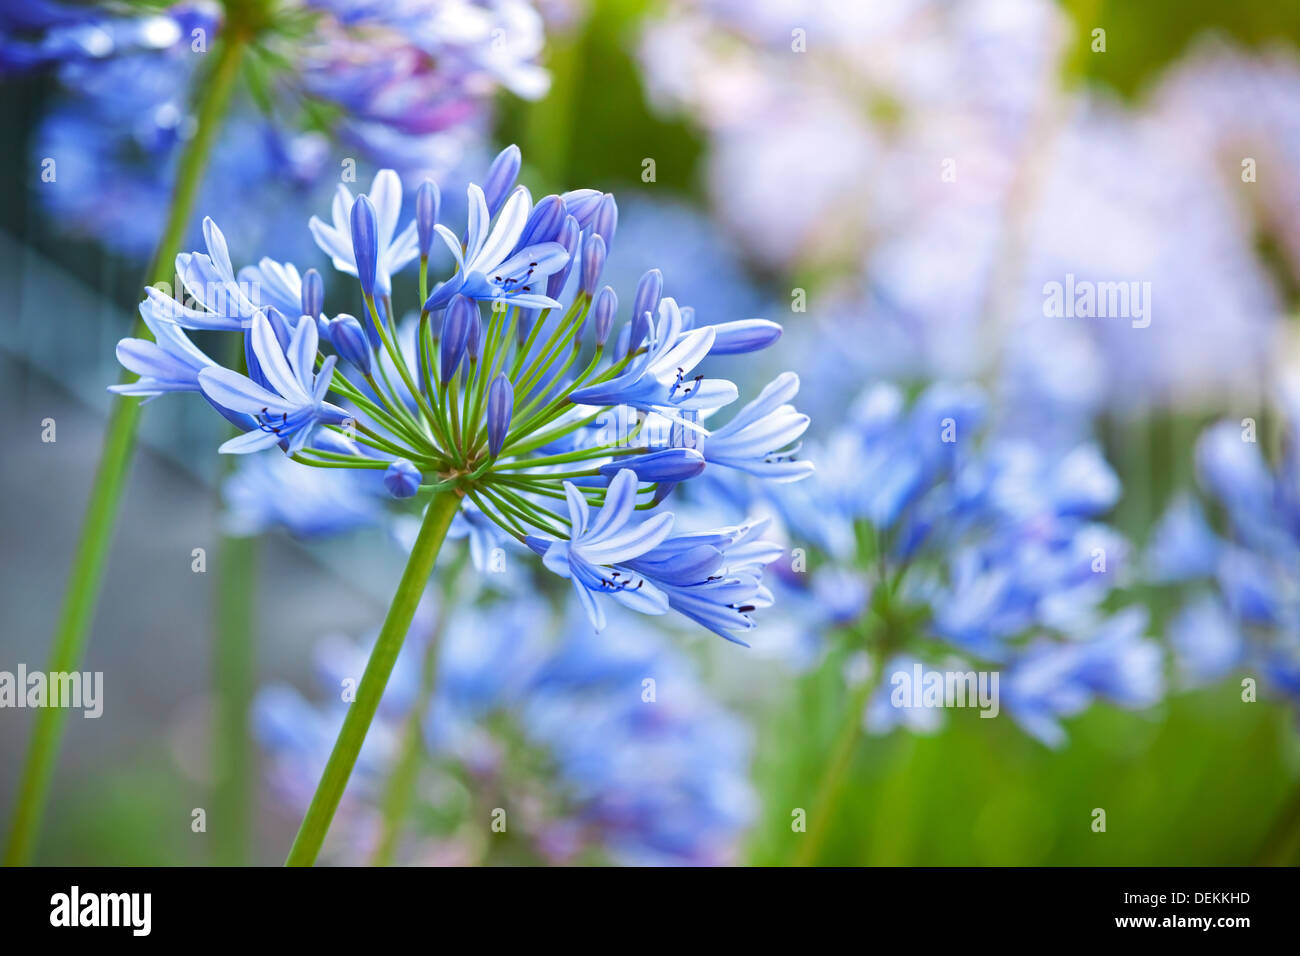 Macro photo of bright blue Agapanthus flowers in the garden - Stock Image